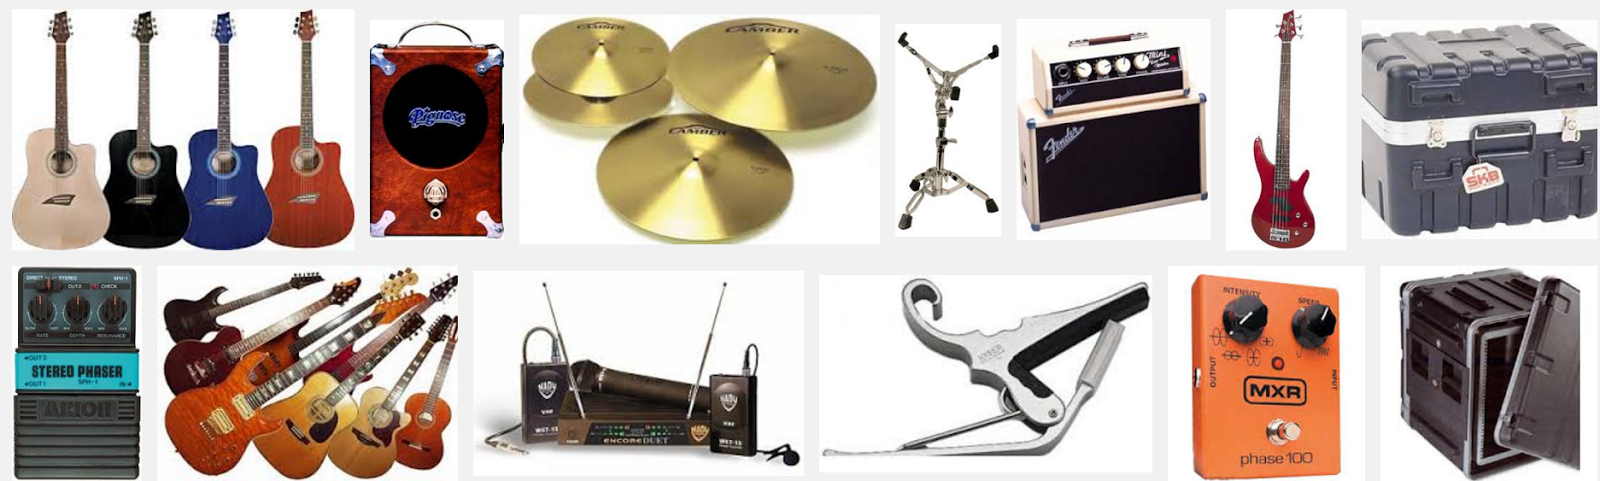 Music Instruments Wholesale Distributors Musical Equipment Drop-Ship